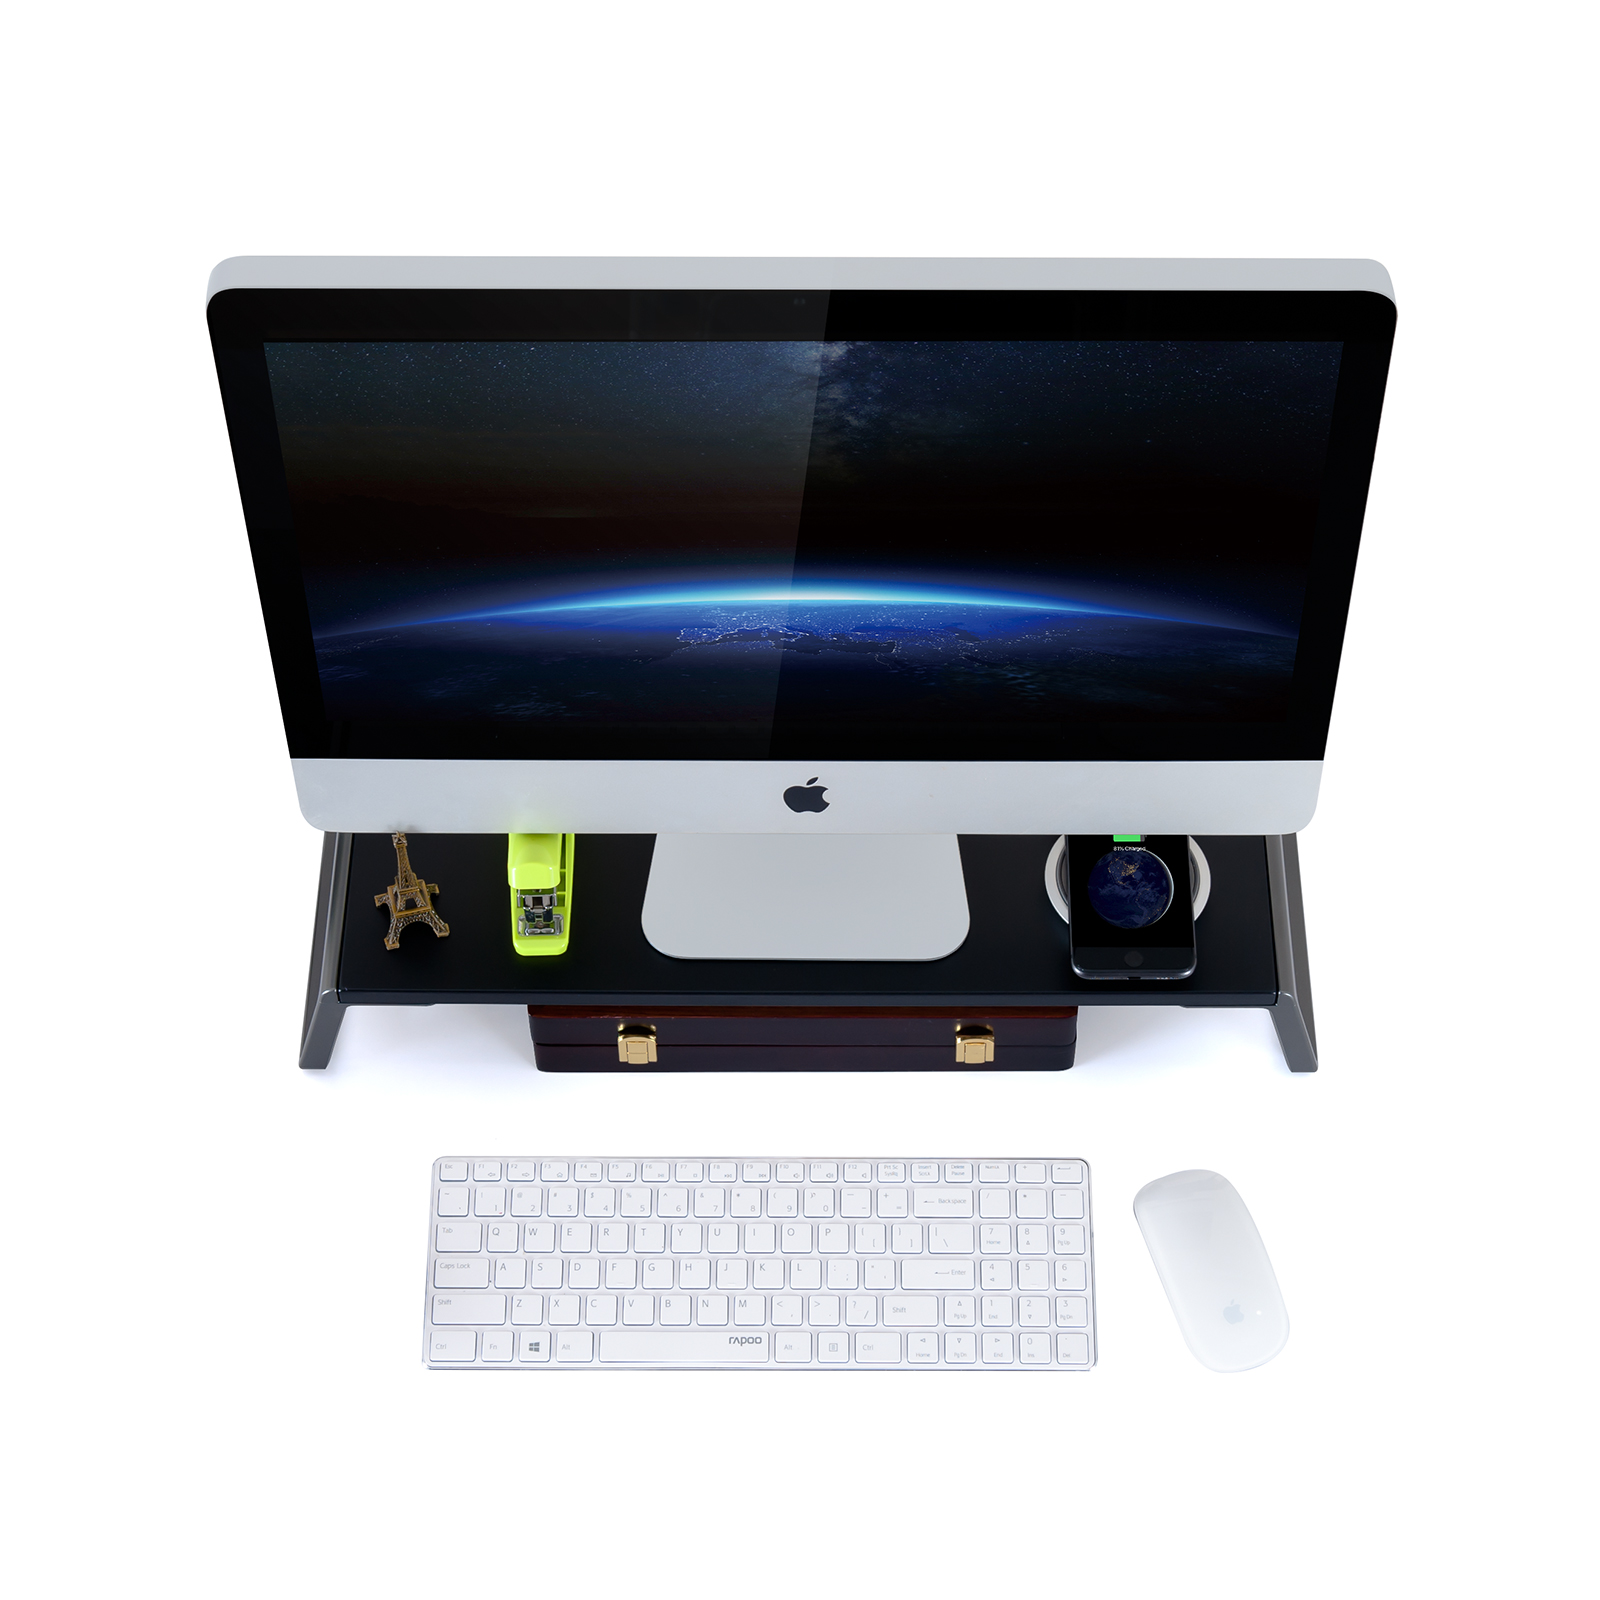 Monitor Stand Riser for Laptop iMac Computer (ID-20)